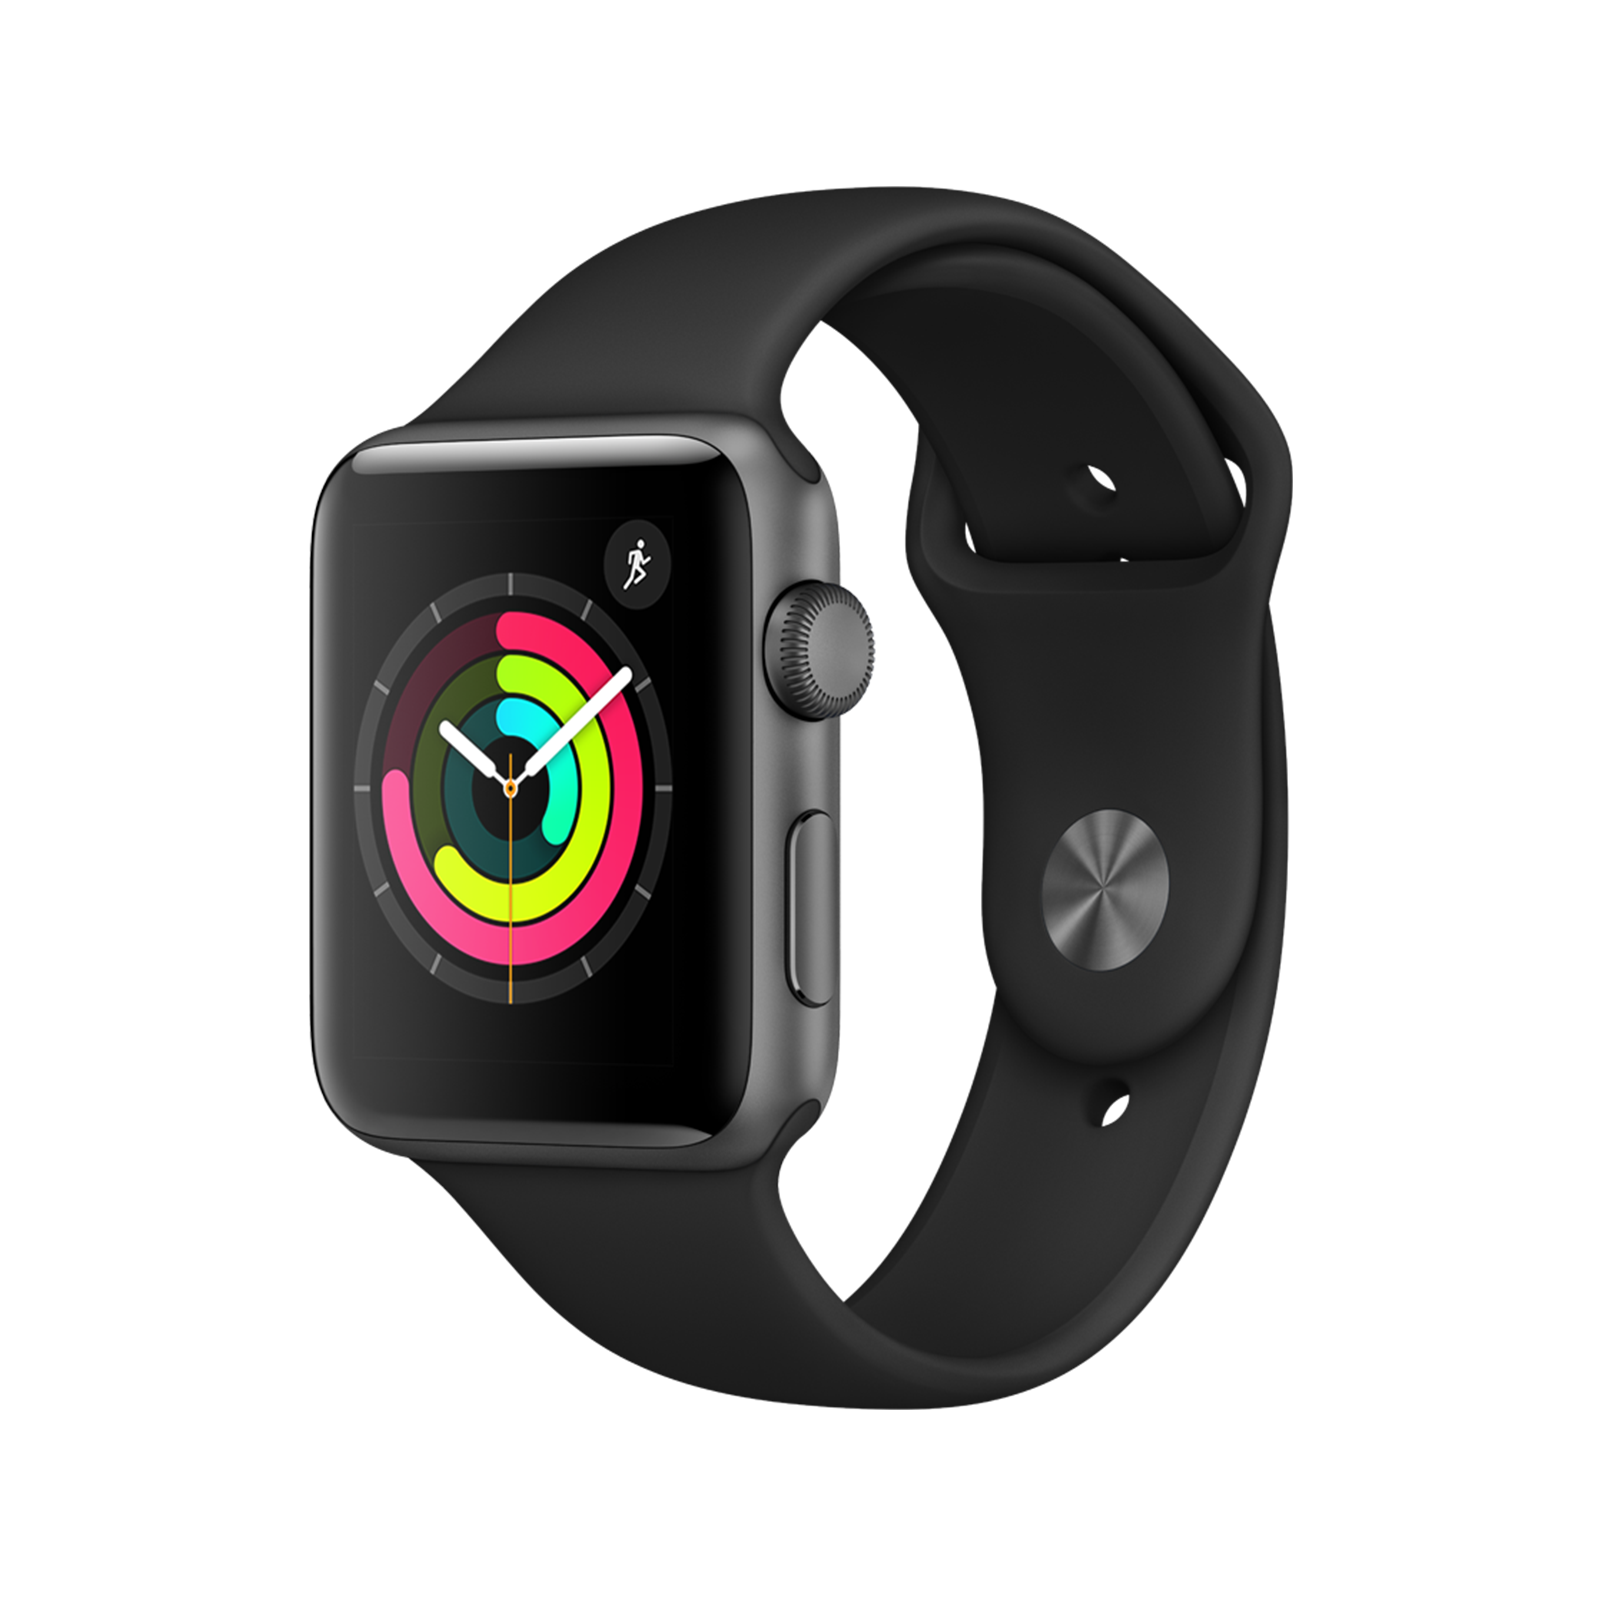 Apple Watch Series 3 GPS 42mm Space Gray Aluminum Case with Black Sport Band | ساعت هوشمند اپل واچ 3 مدل 42mm Space Gray Aluminum Case with Black Sport Band